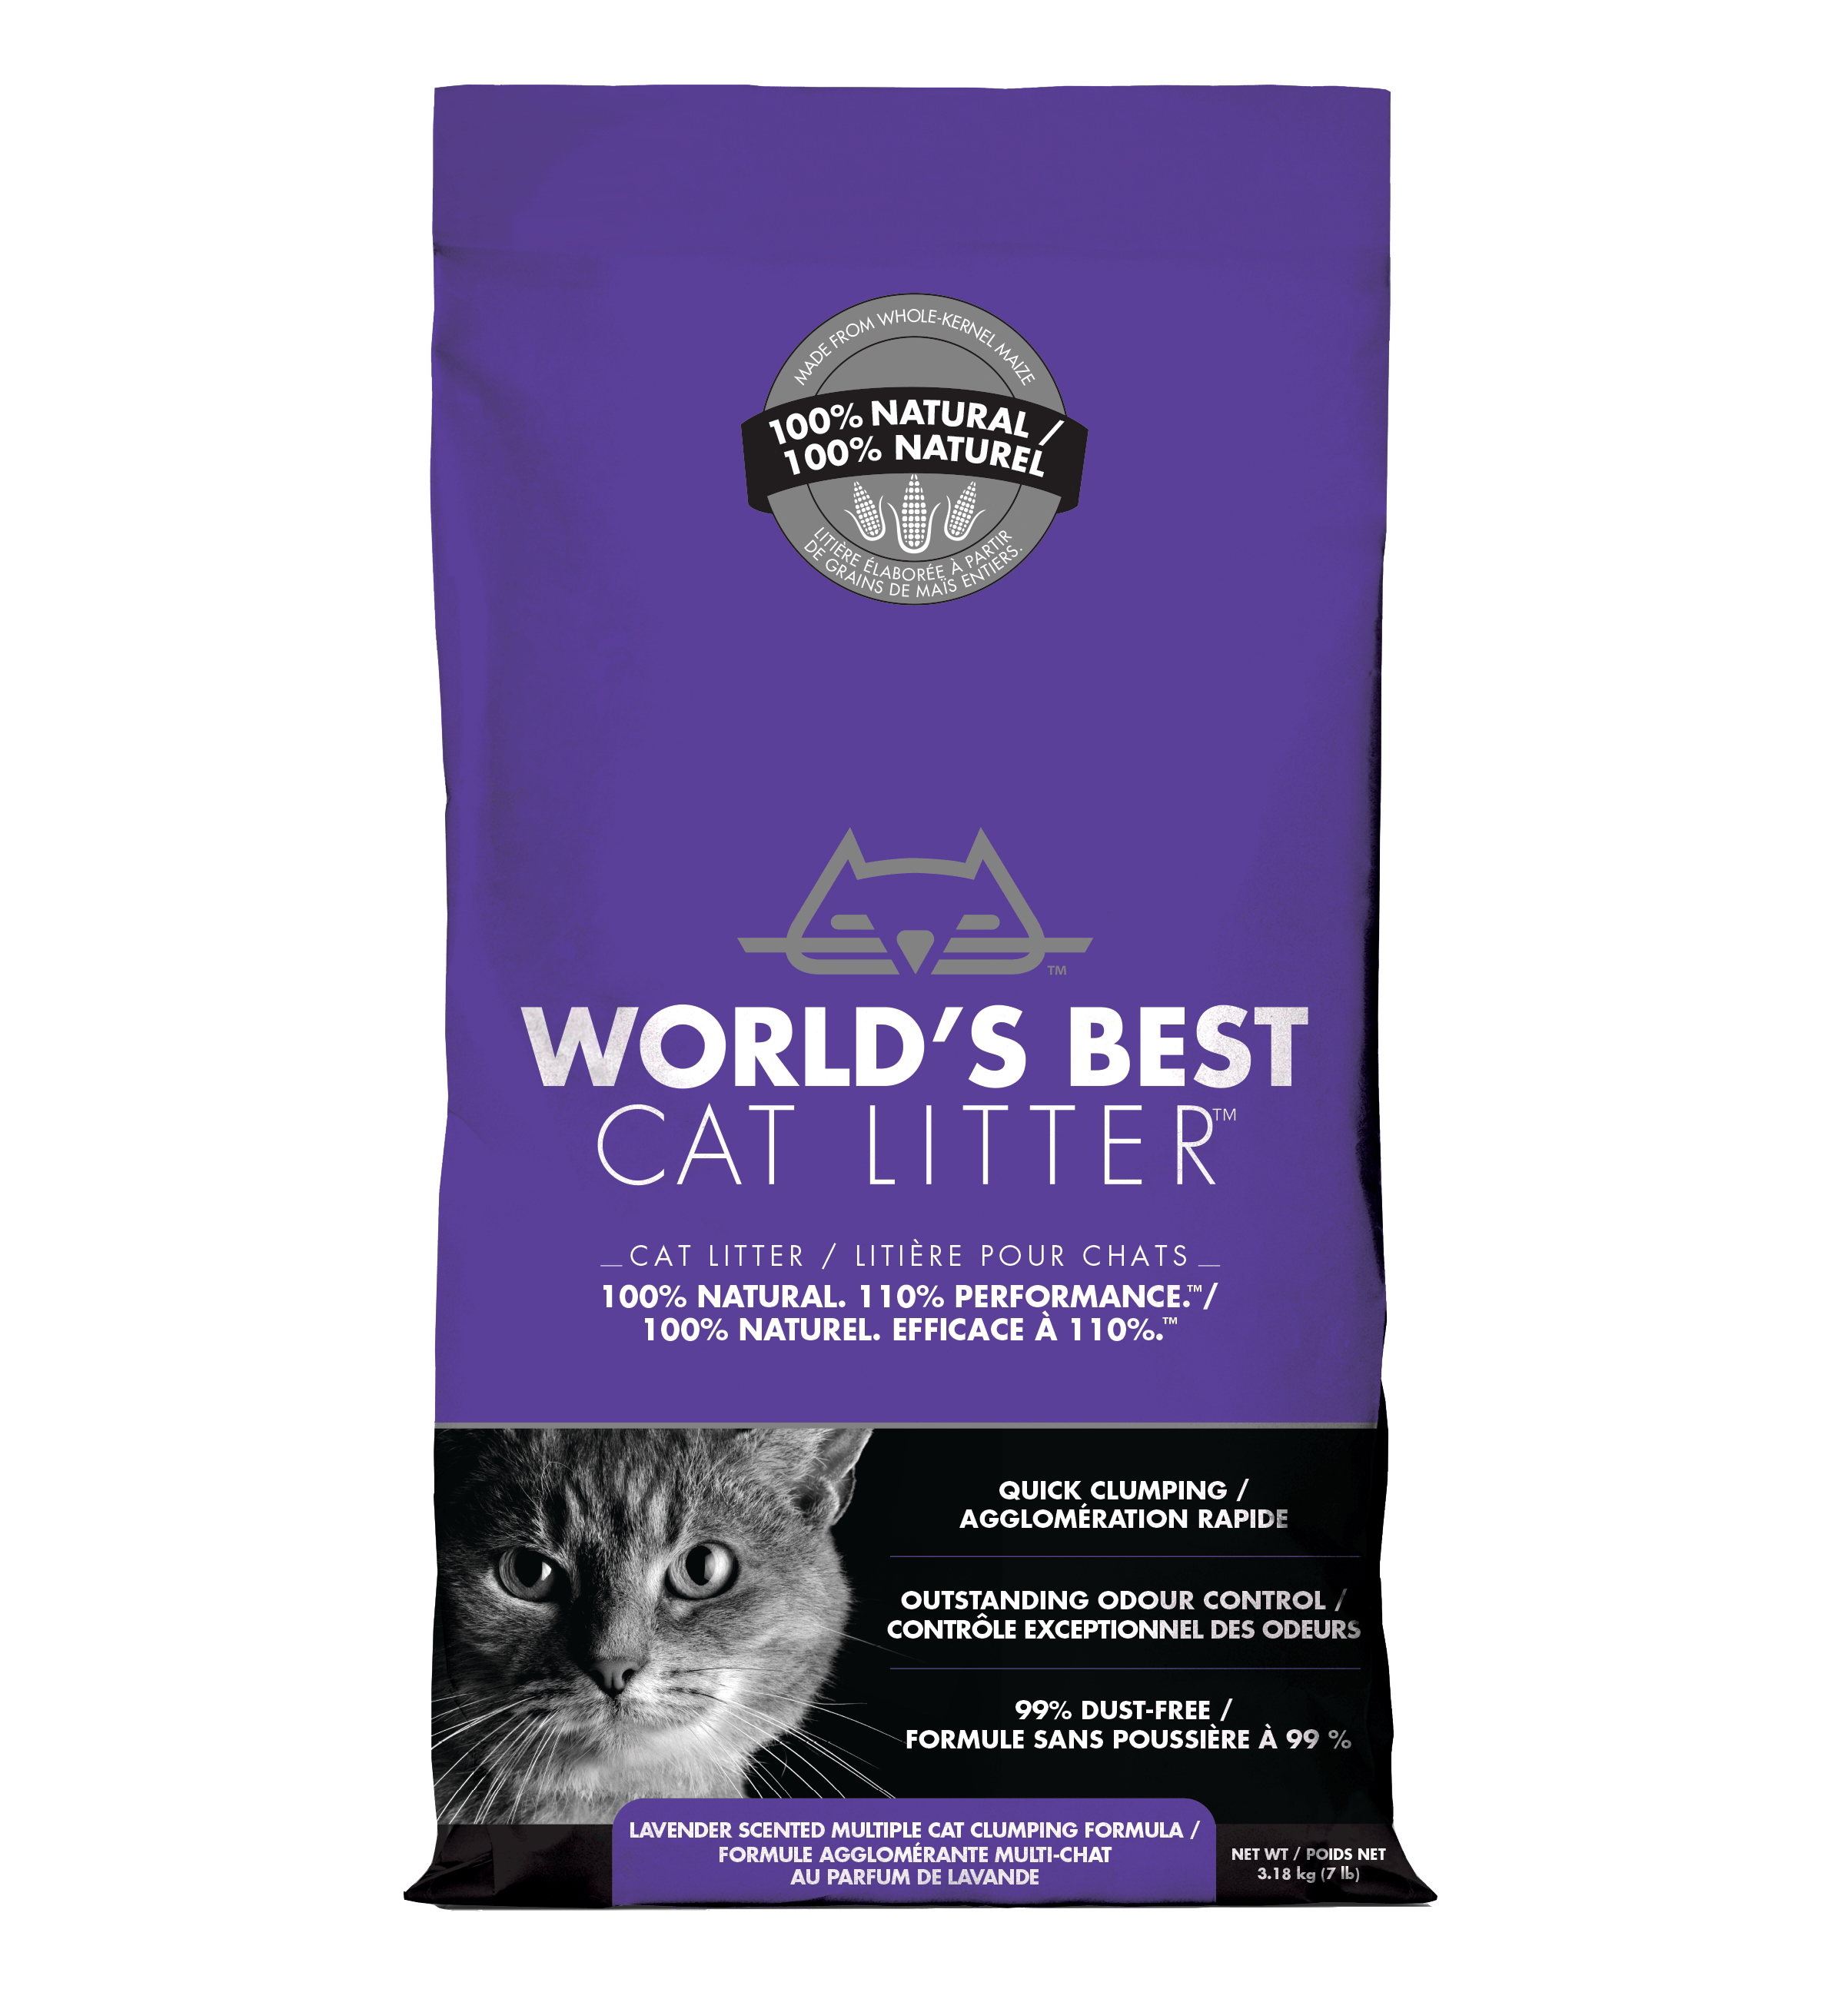 World's Best Cat Litter - Scented Multi Cat Formula | 12.70kg - Click to enlarge picture.